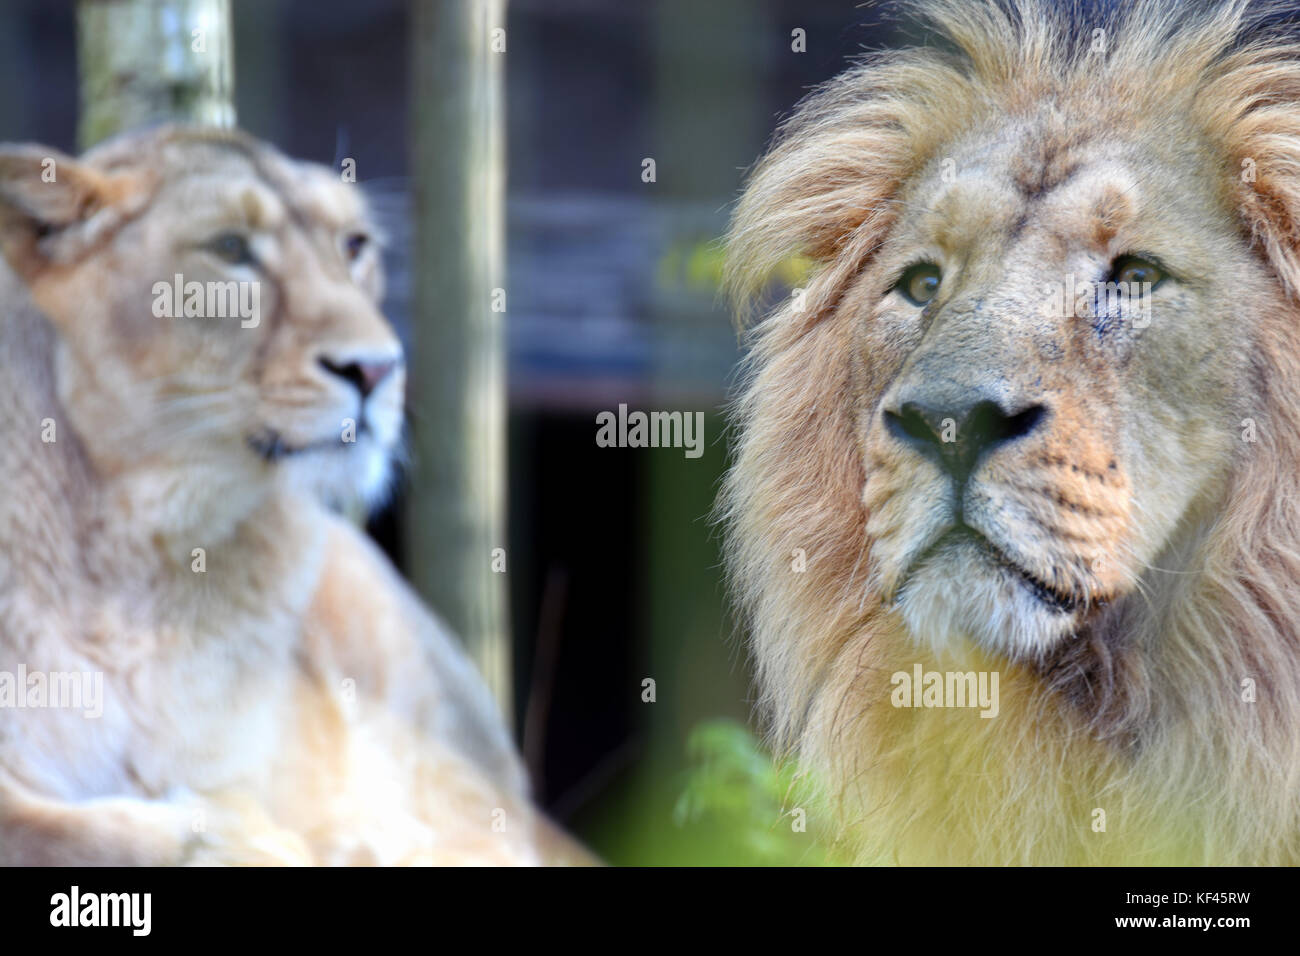 Asian lions (Panthera leo persica) couple, also known as the Asiatic, Indian or Persian lion. - Stock Image